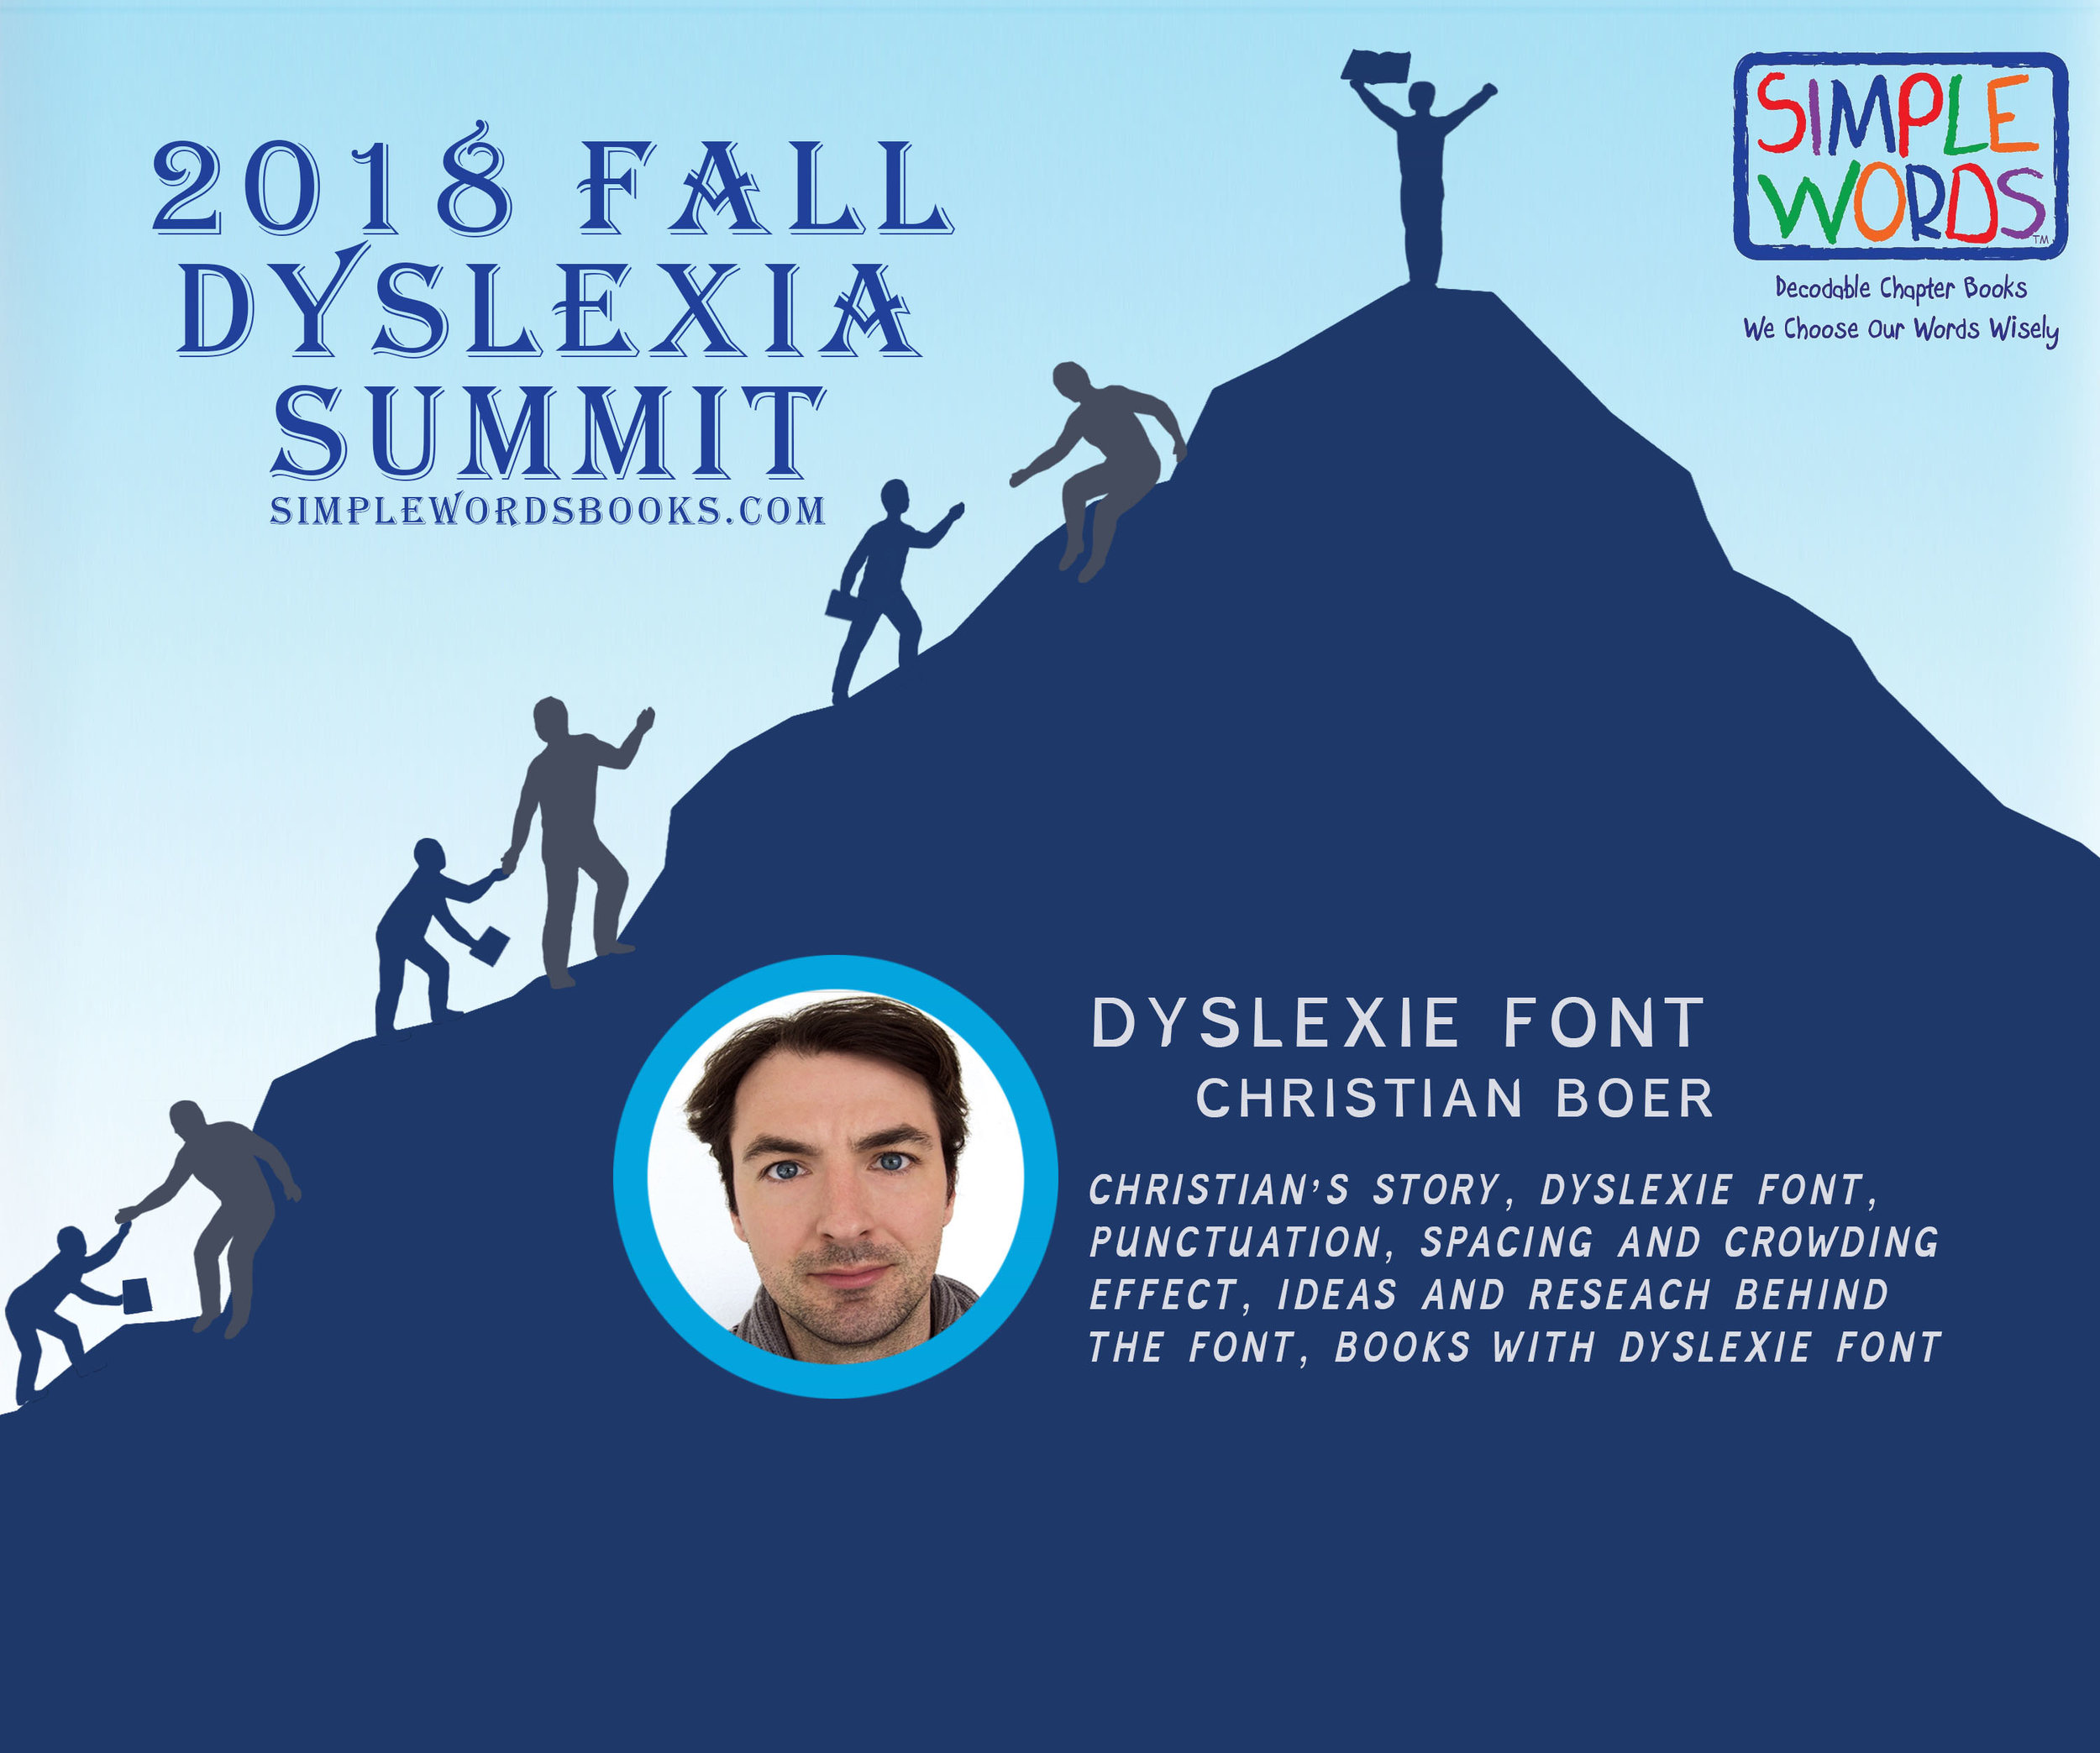 SIMPLE WORDS BOOKS 2018 Summit Fall Christian Boer DYSLEXIE FONT.jpg